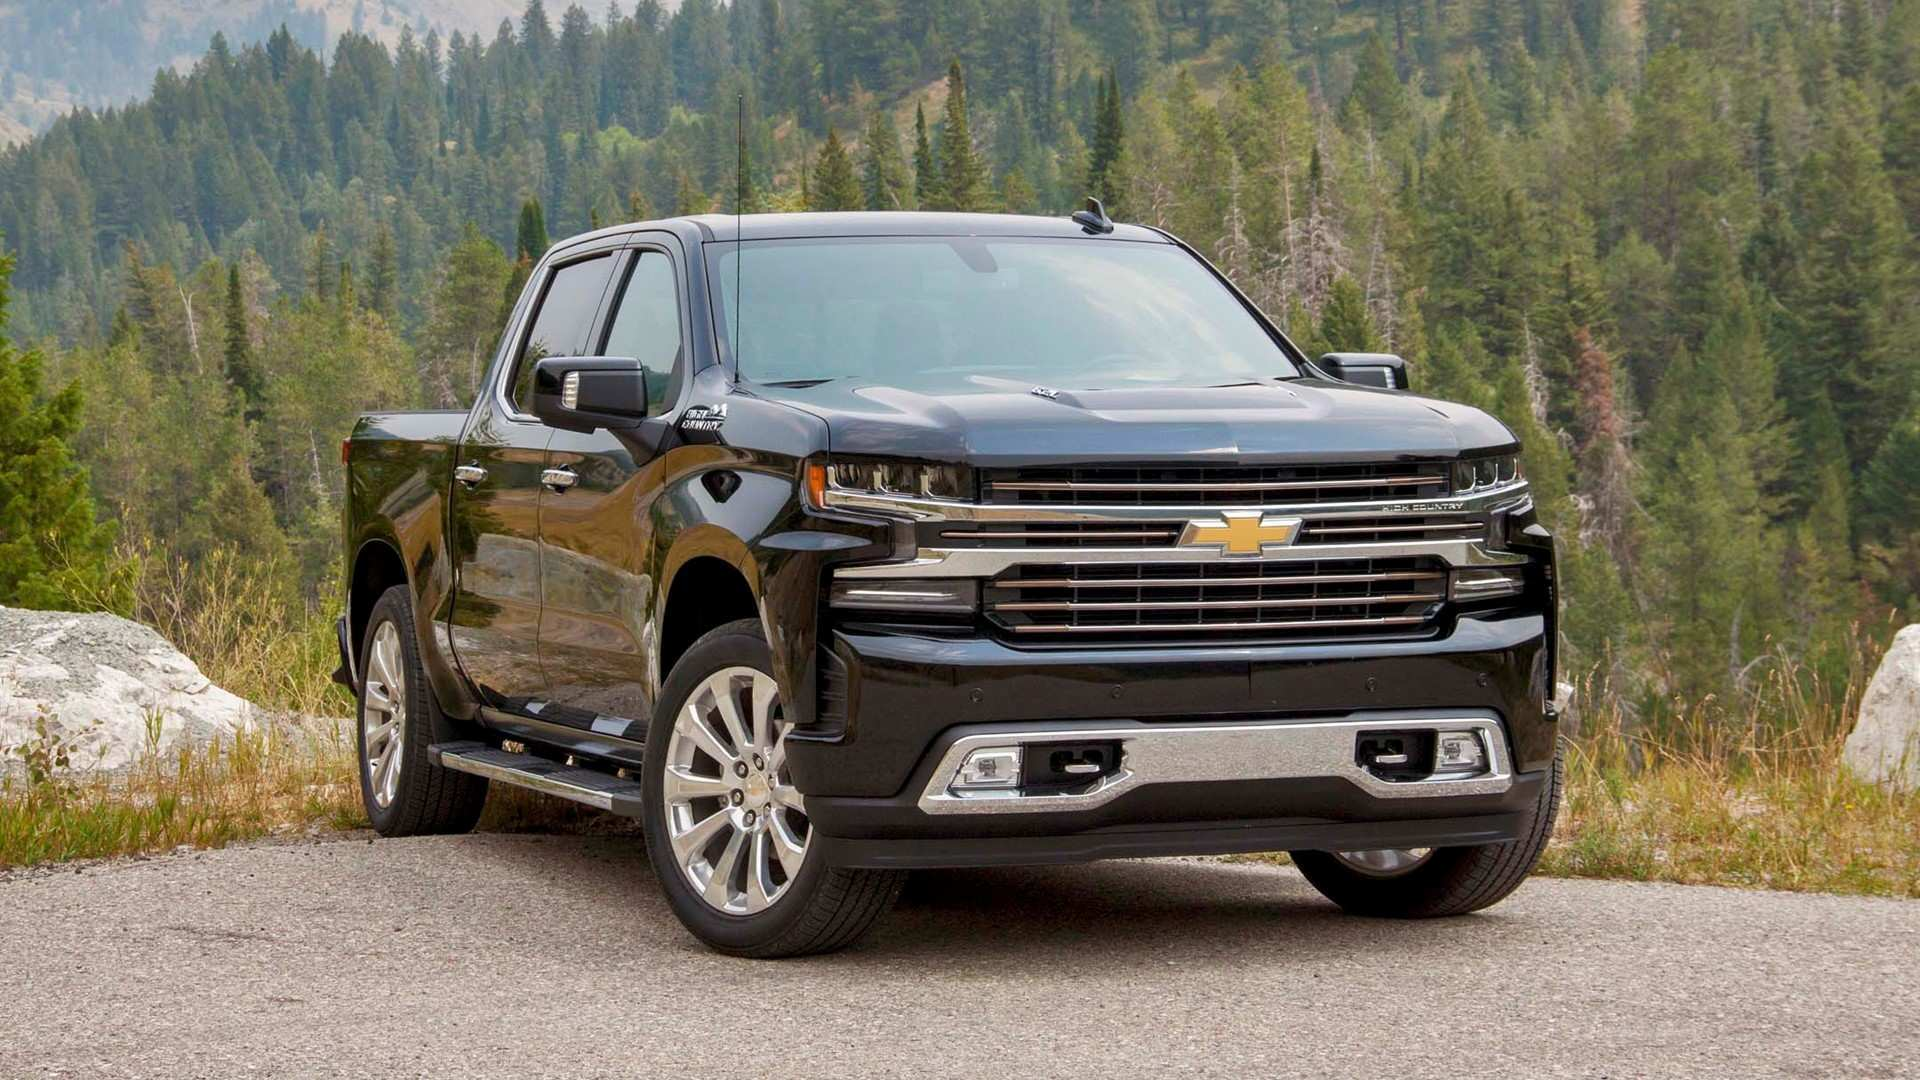 58 Great New 2019 Chevrolet Silverado Aluminum First Drive New Concept by New 2019 Chevrolet Silverado Aluminum First Drive